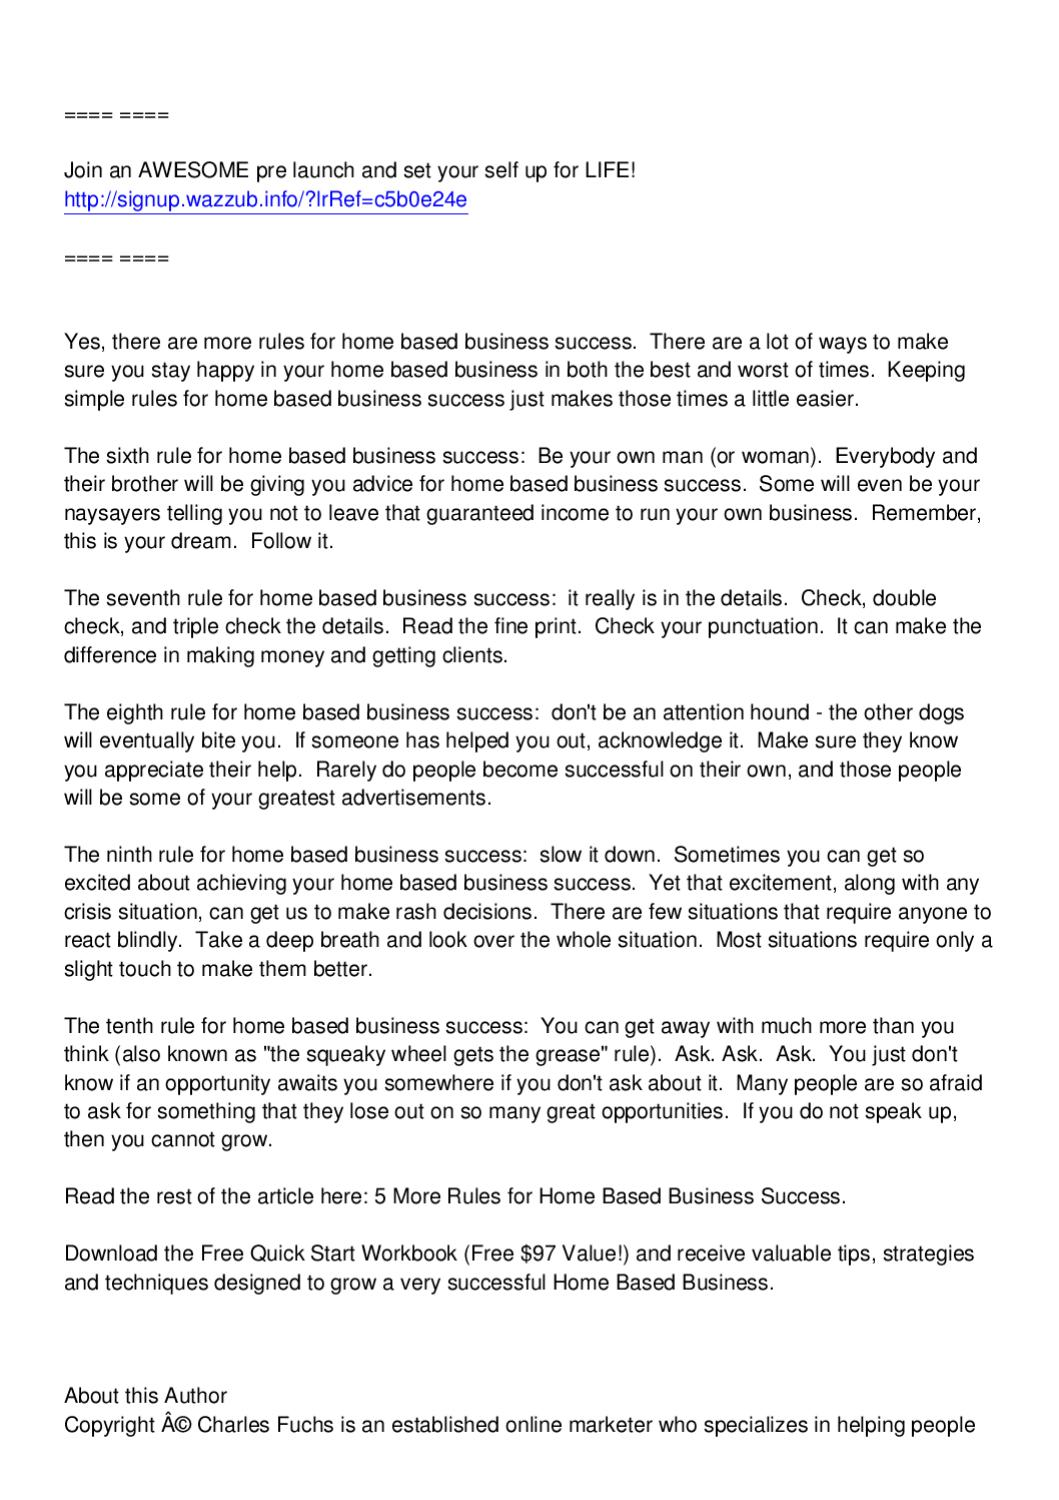 Home based business by suz suzebusiness - issuu